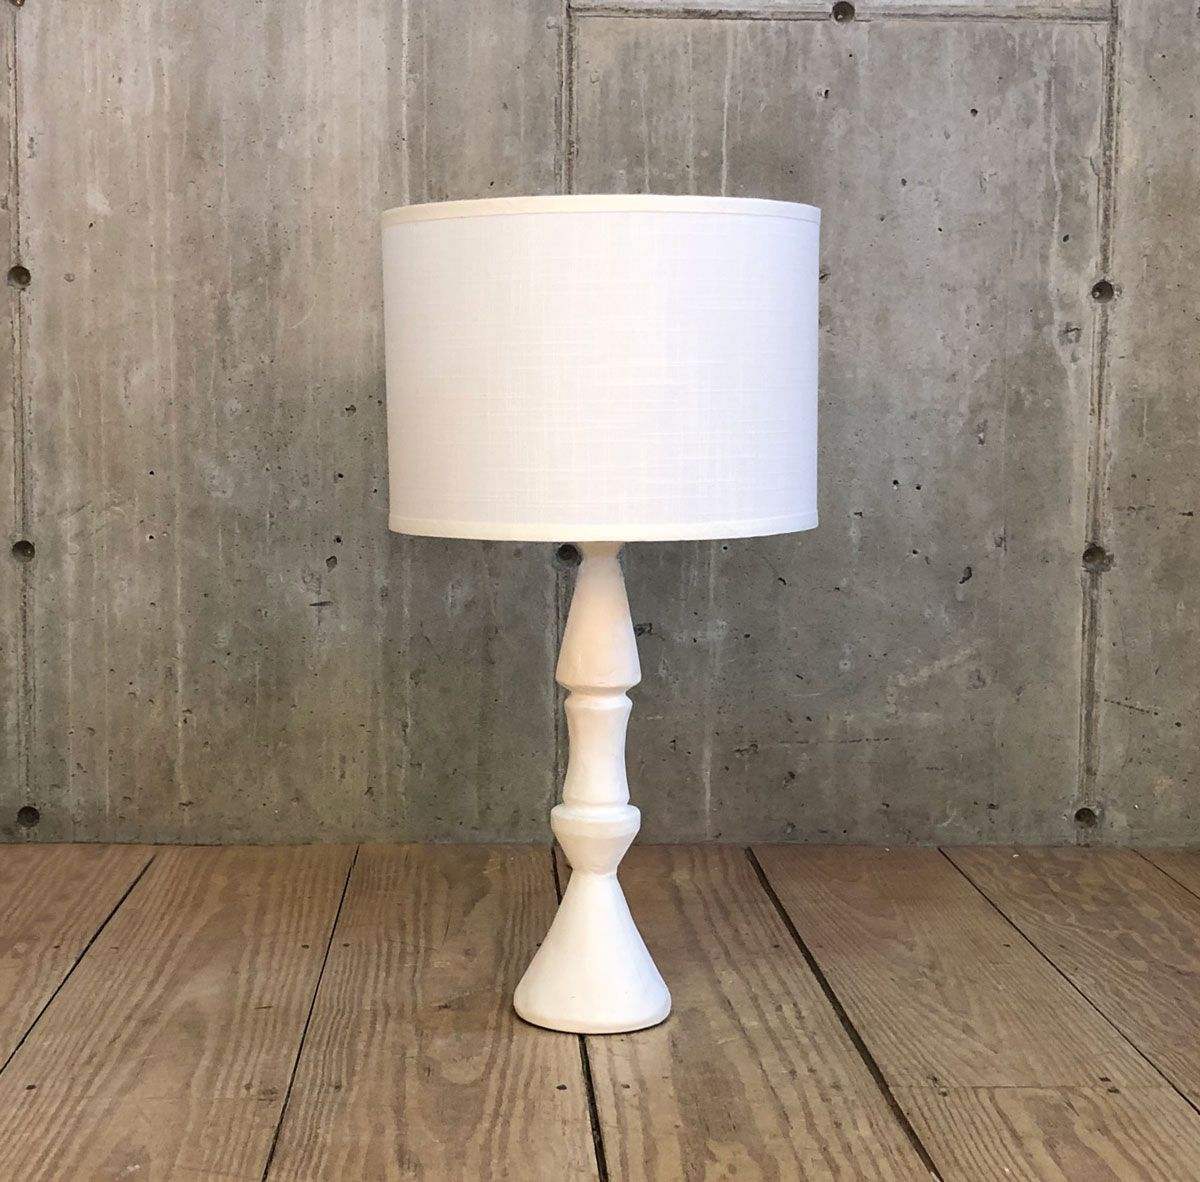 Gesso Painted Totem Table Lamp After Model By Giacometti Rt Facts Kent Ct Table Lamp Lamp Painting Lamps